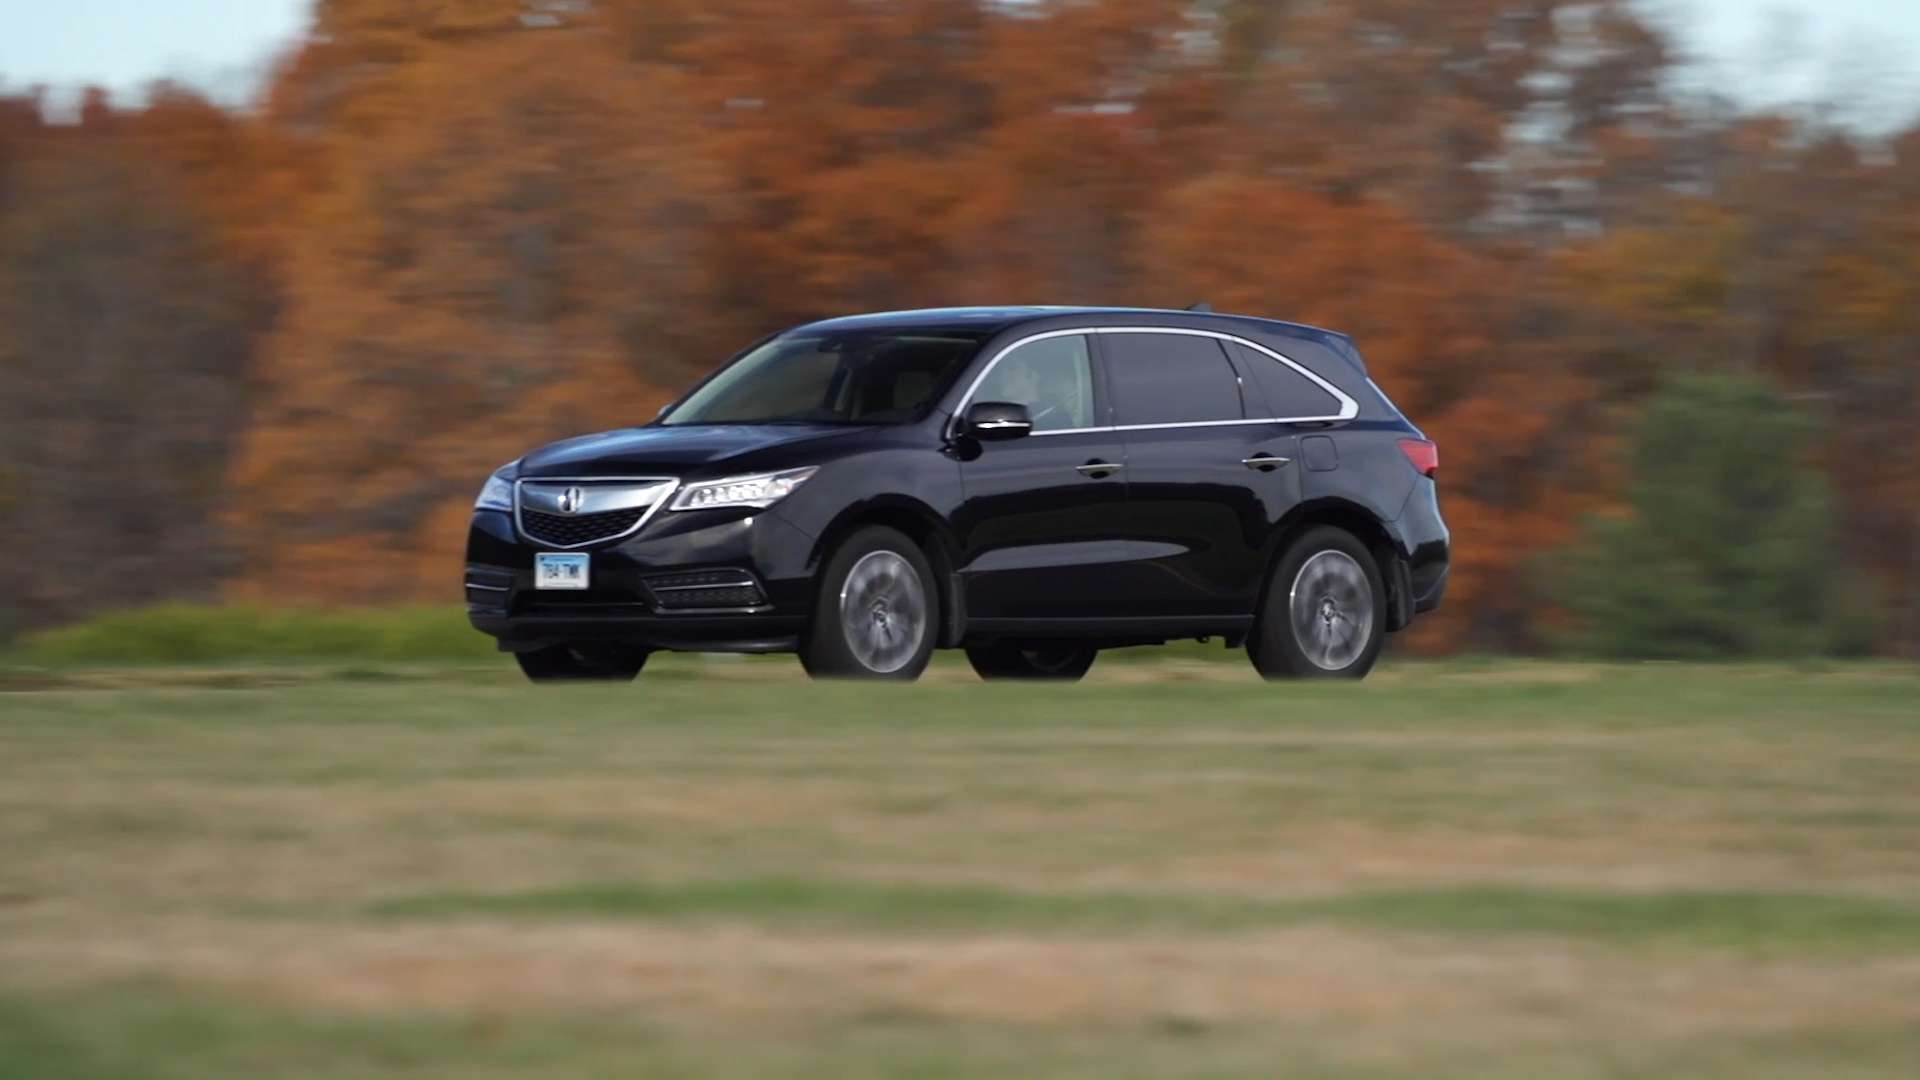 2018 Acura MDX Reviews Ratings Prices Consumer Reports